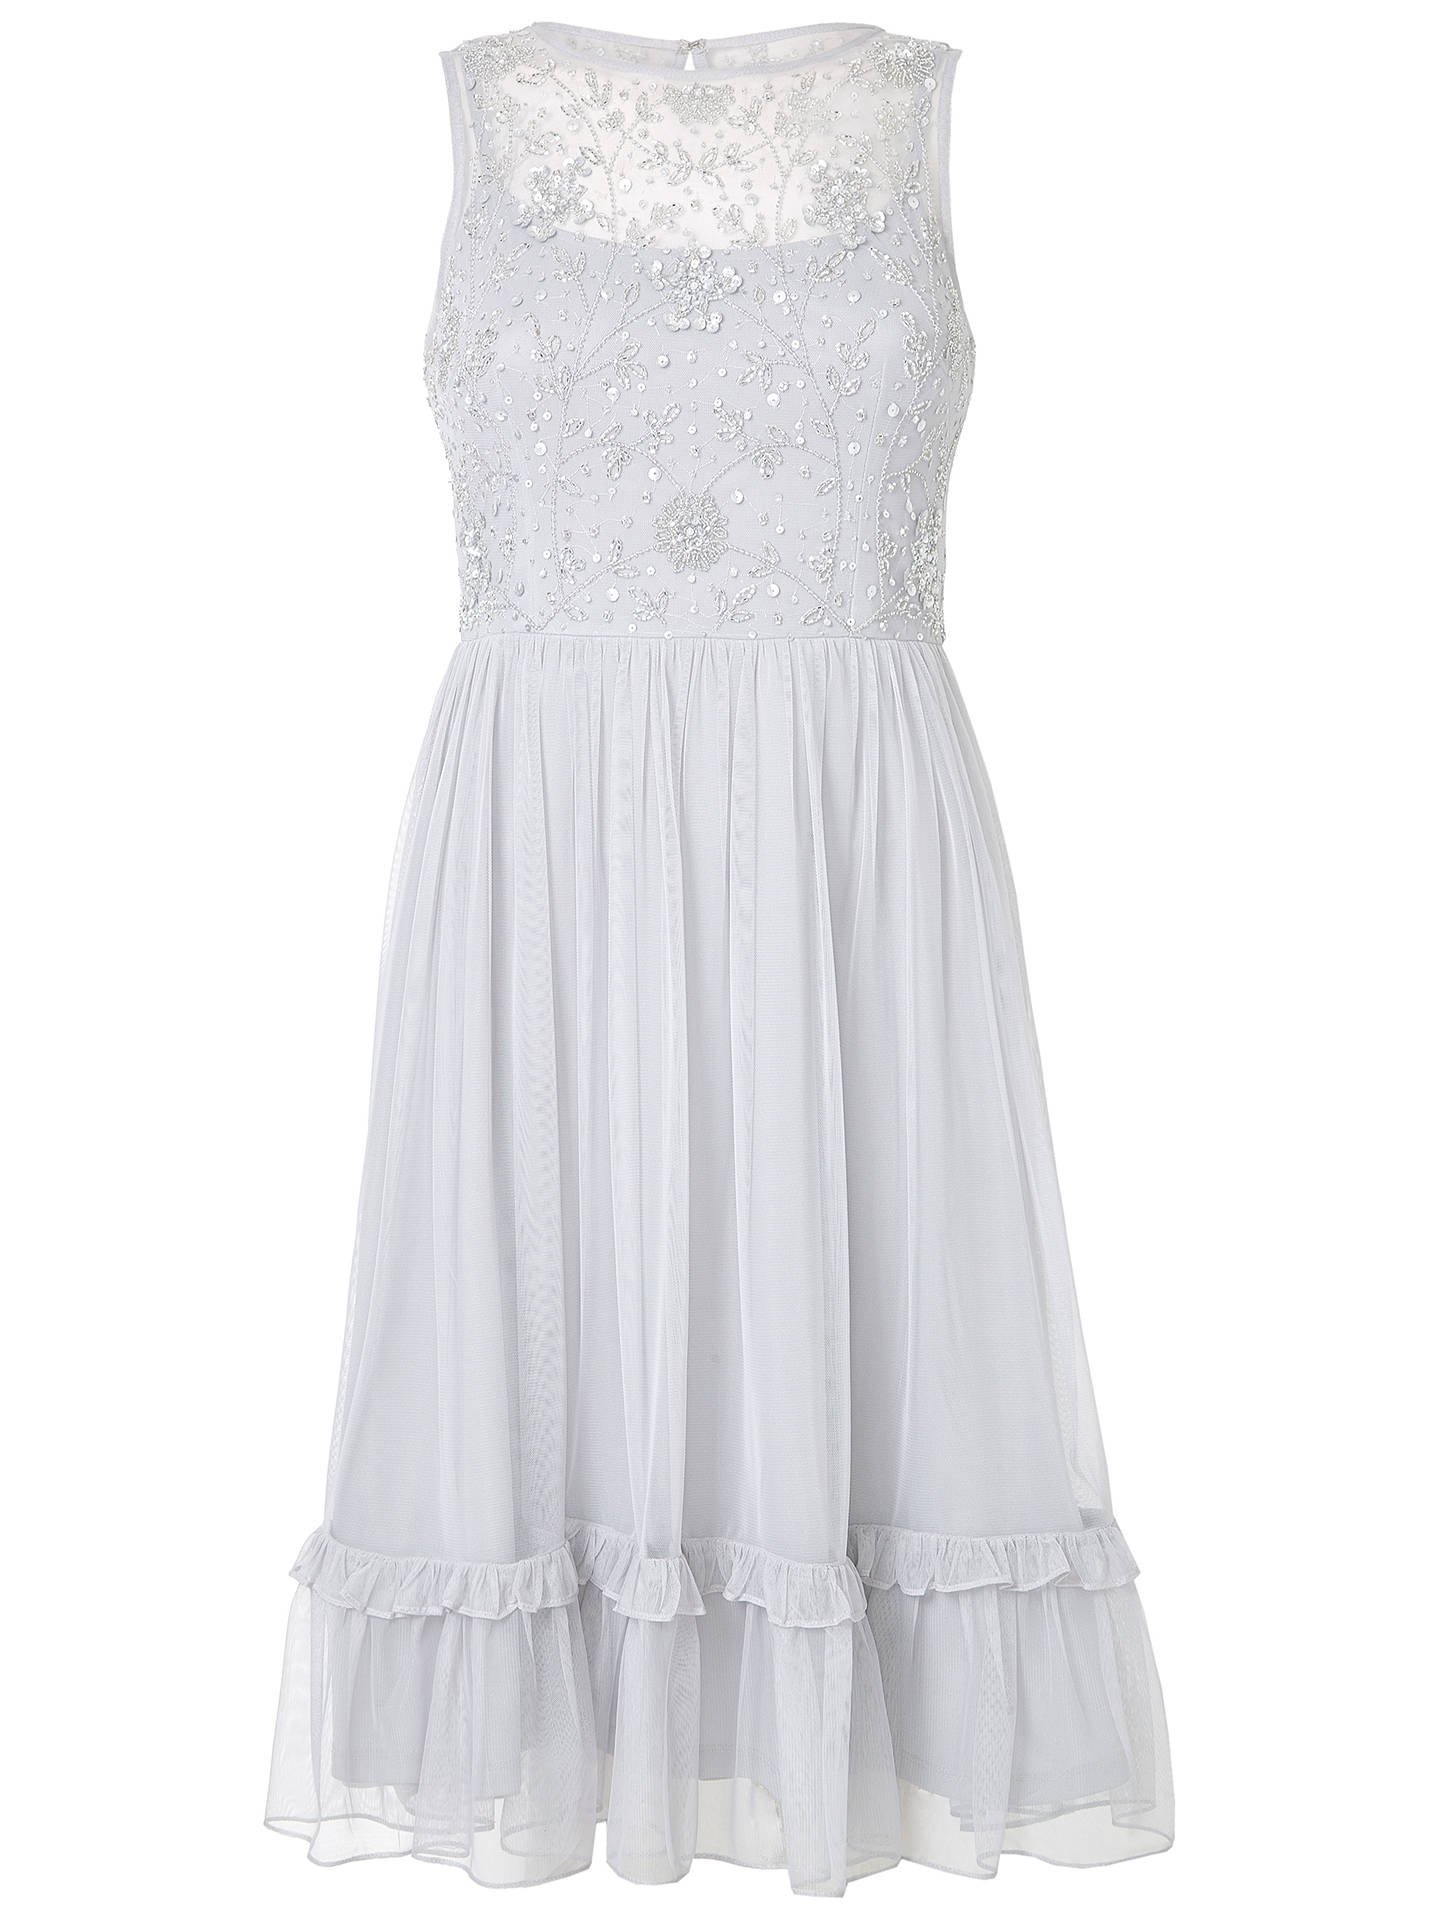 Buy Adrianna Papell Embroidered Party Dress, Silver, 6 Online at johnlewis.com